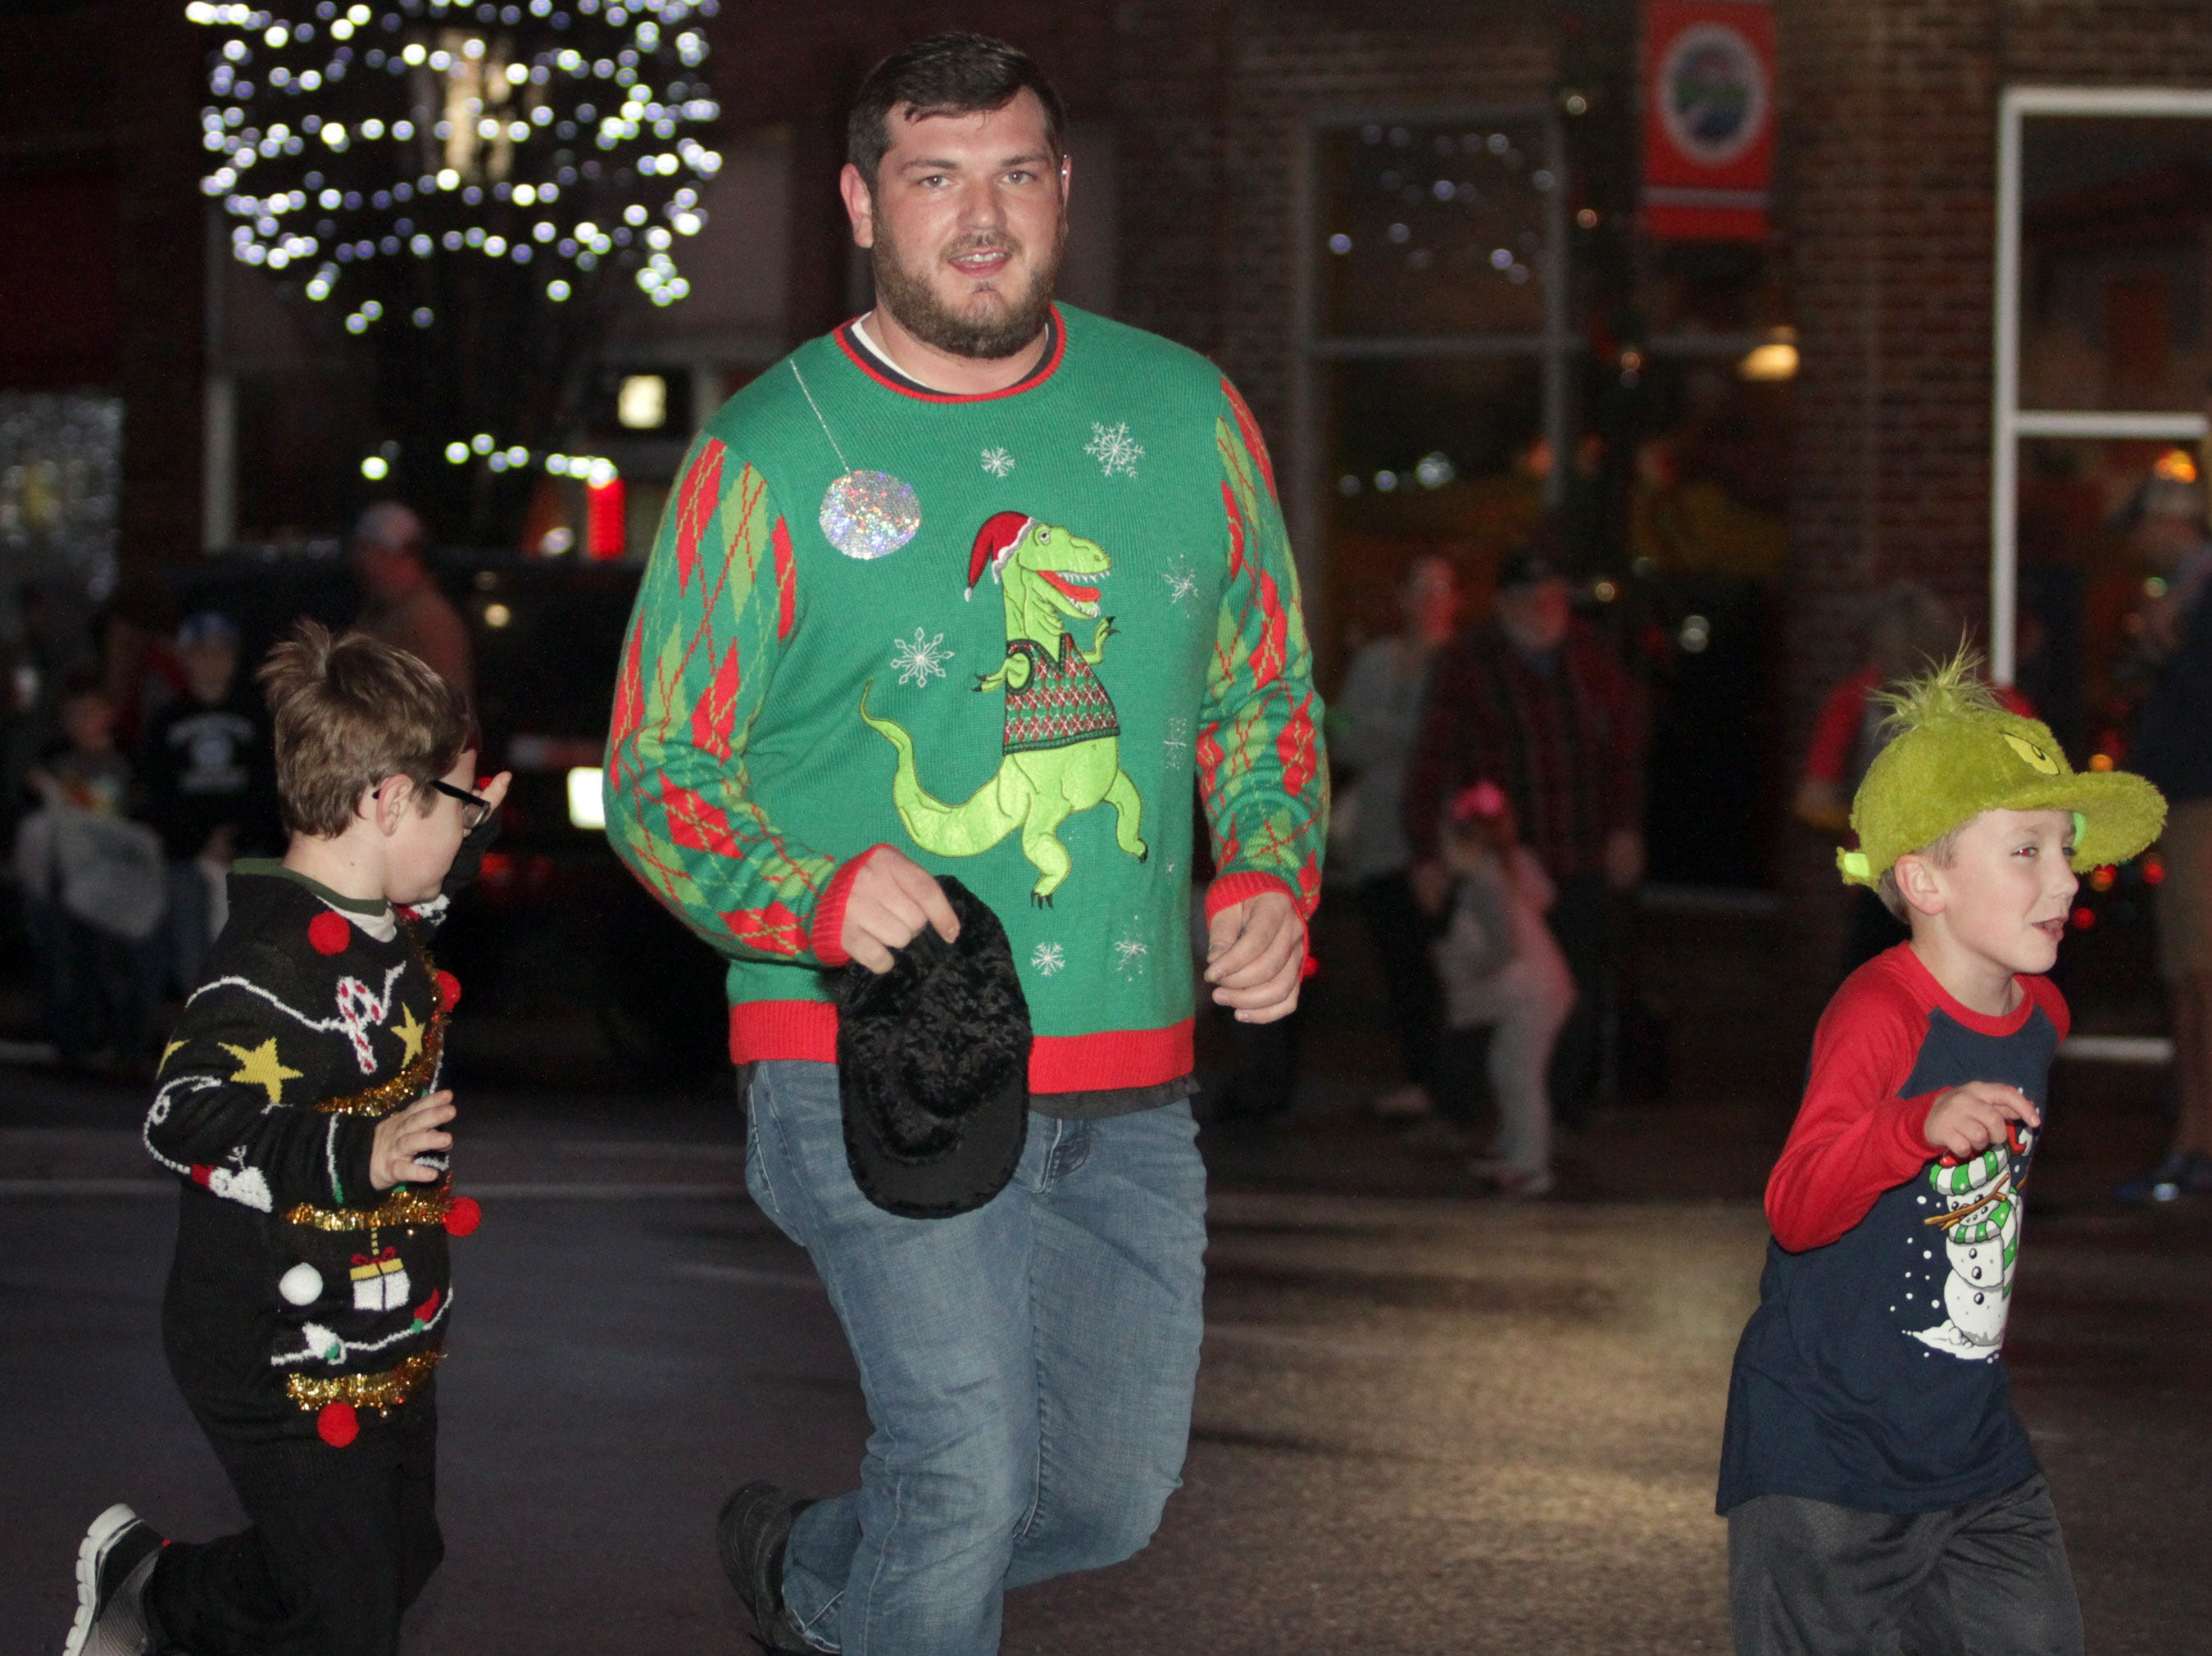 The start of the Ashland City xmas parade featured runners in ugly xmas sweaters on Saturday, December 1, 2018.